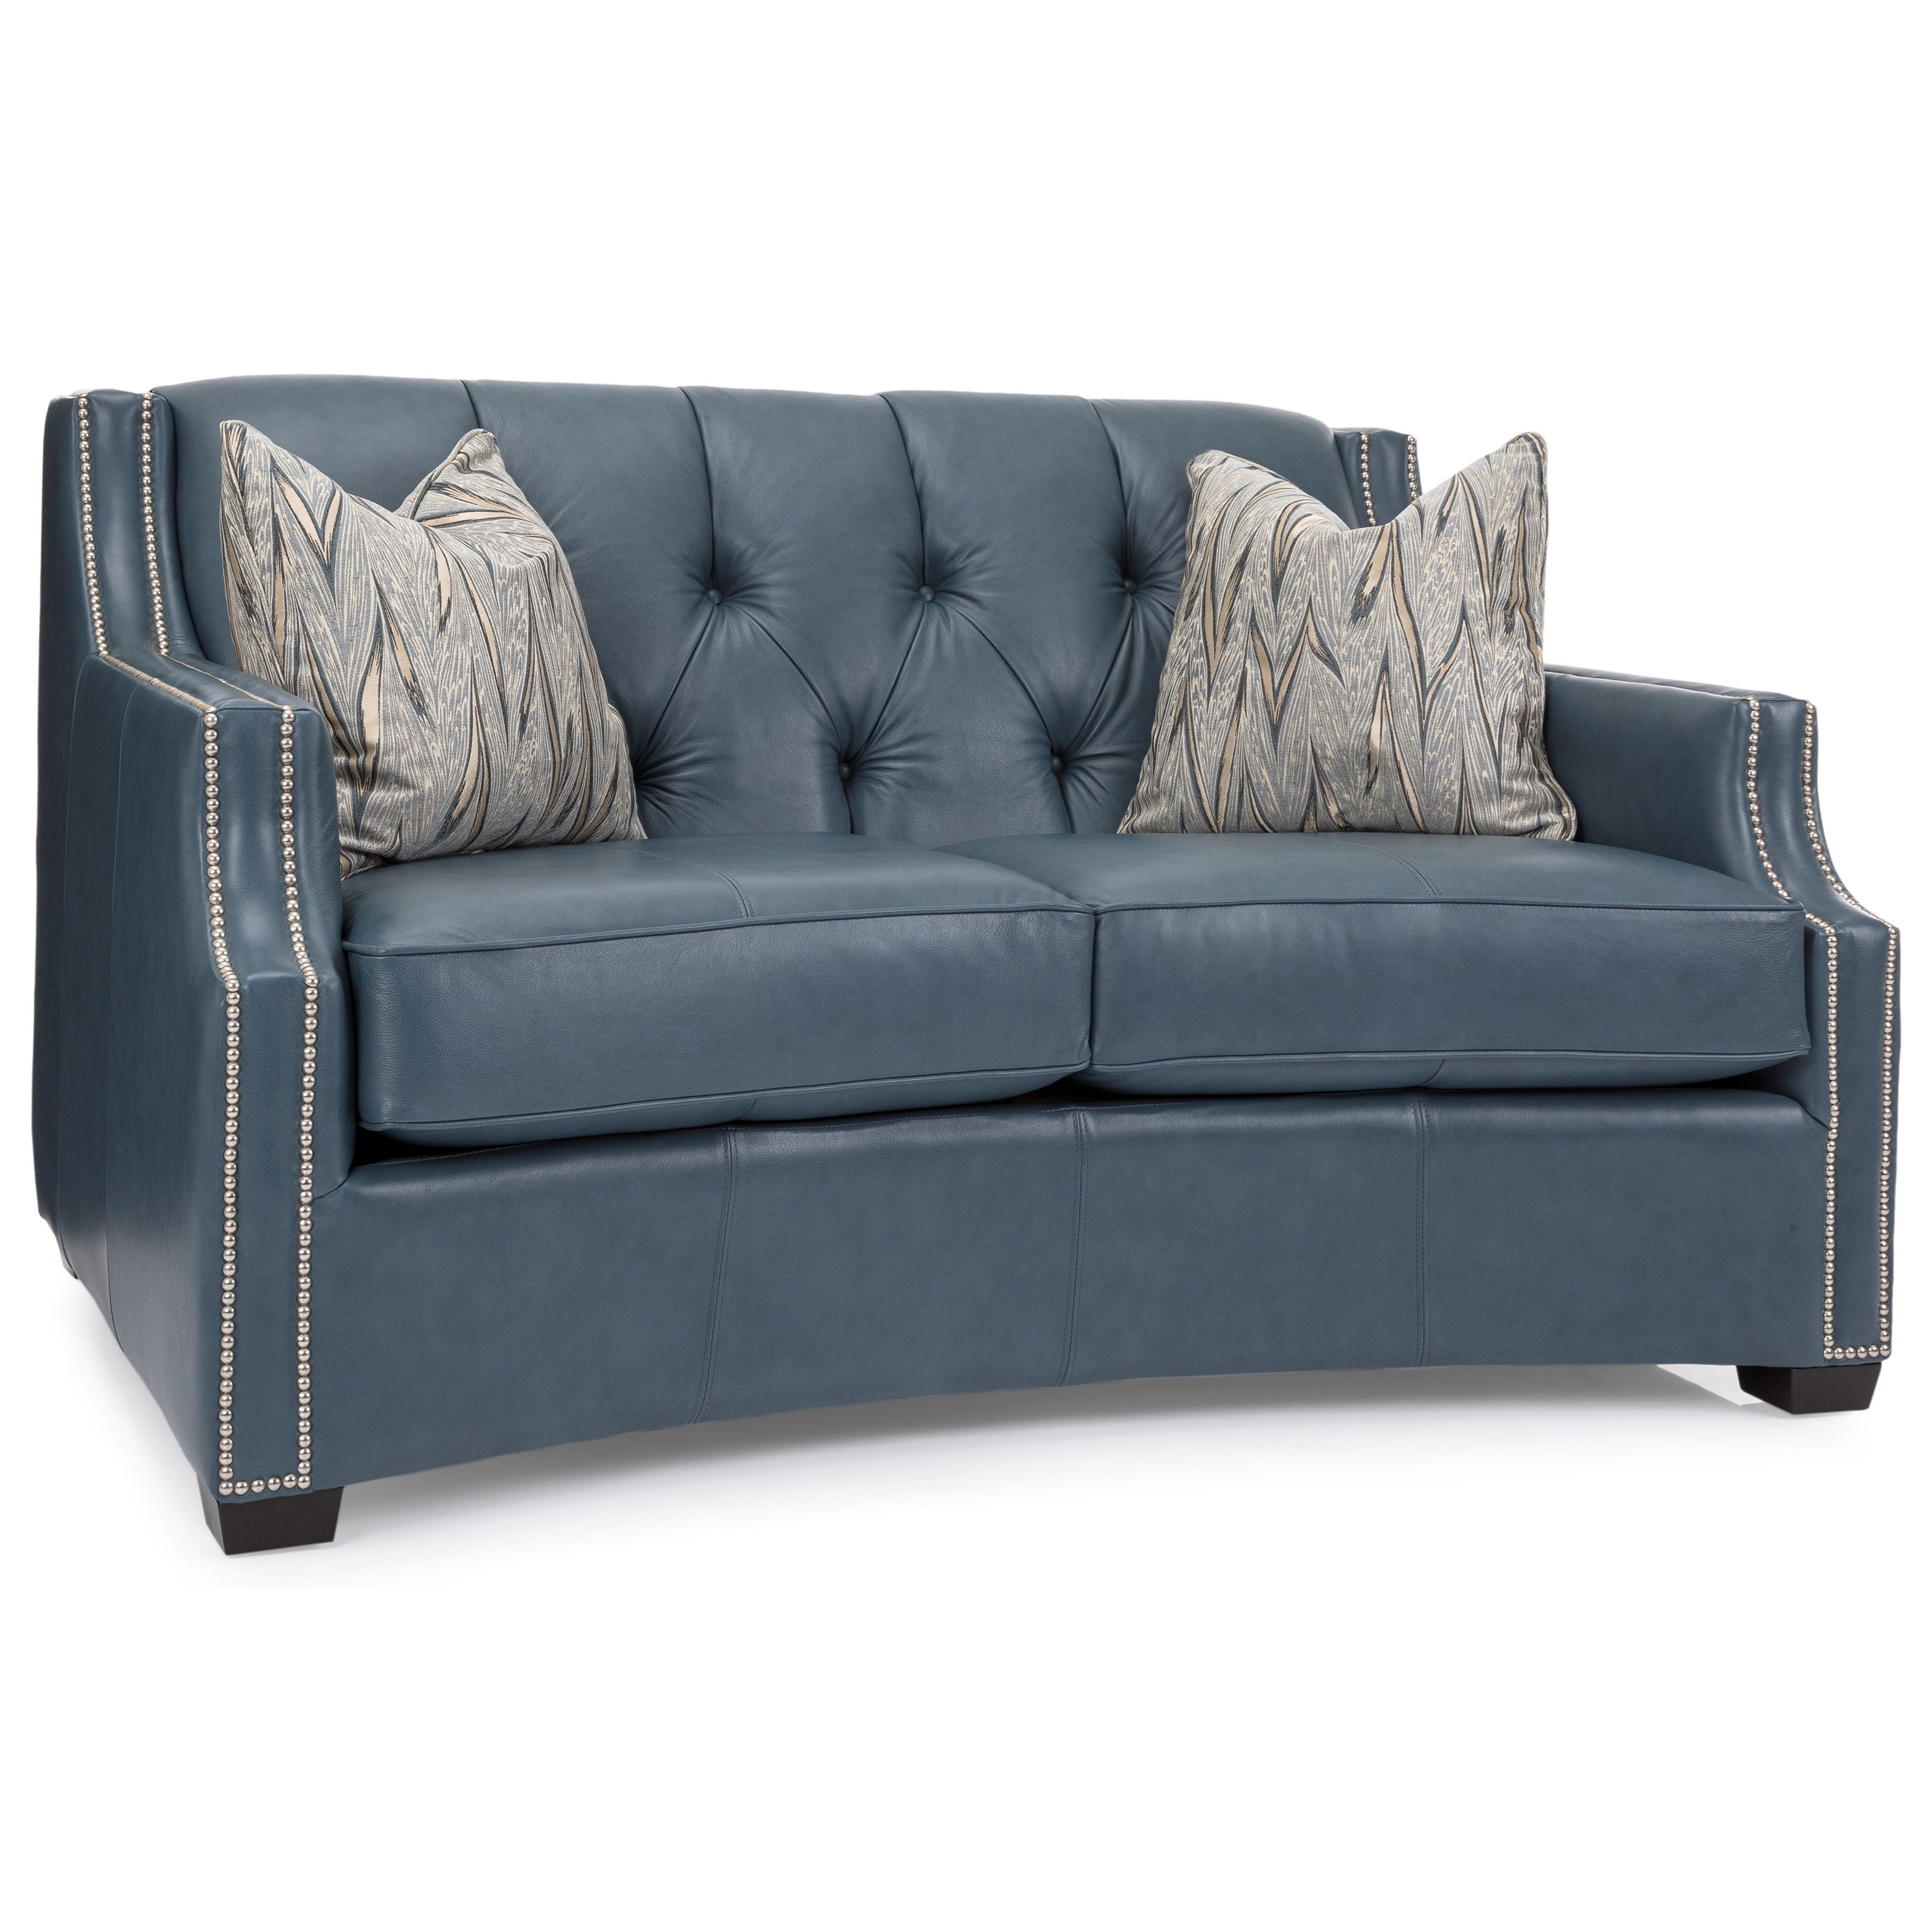 2789 Loveseat by Decor-Rest at Upper Room Home Furnishings